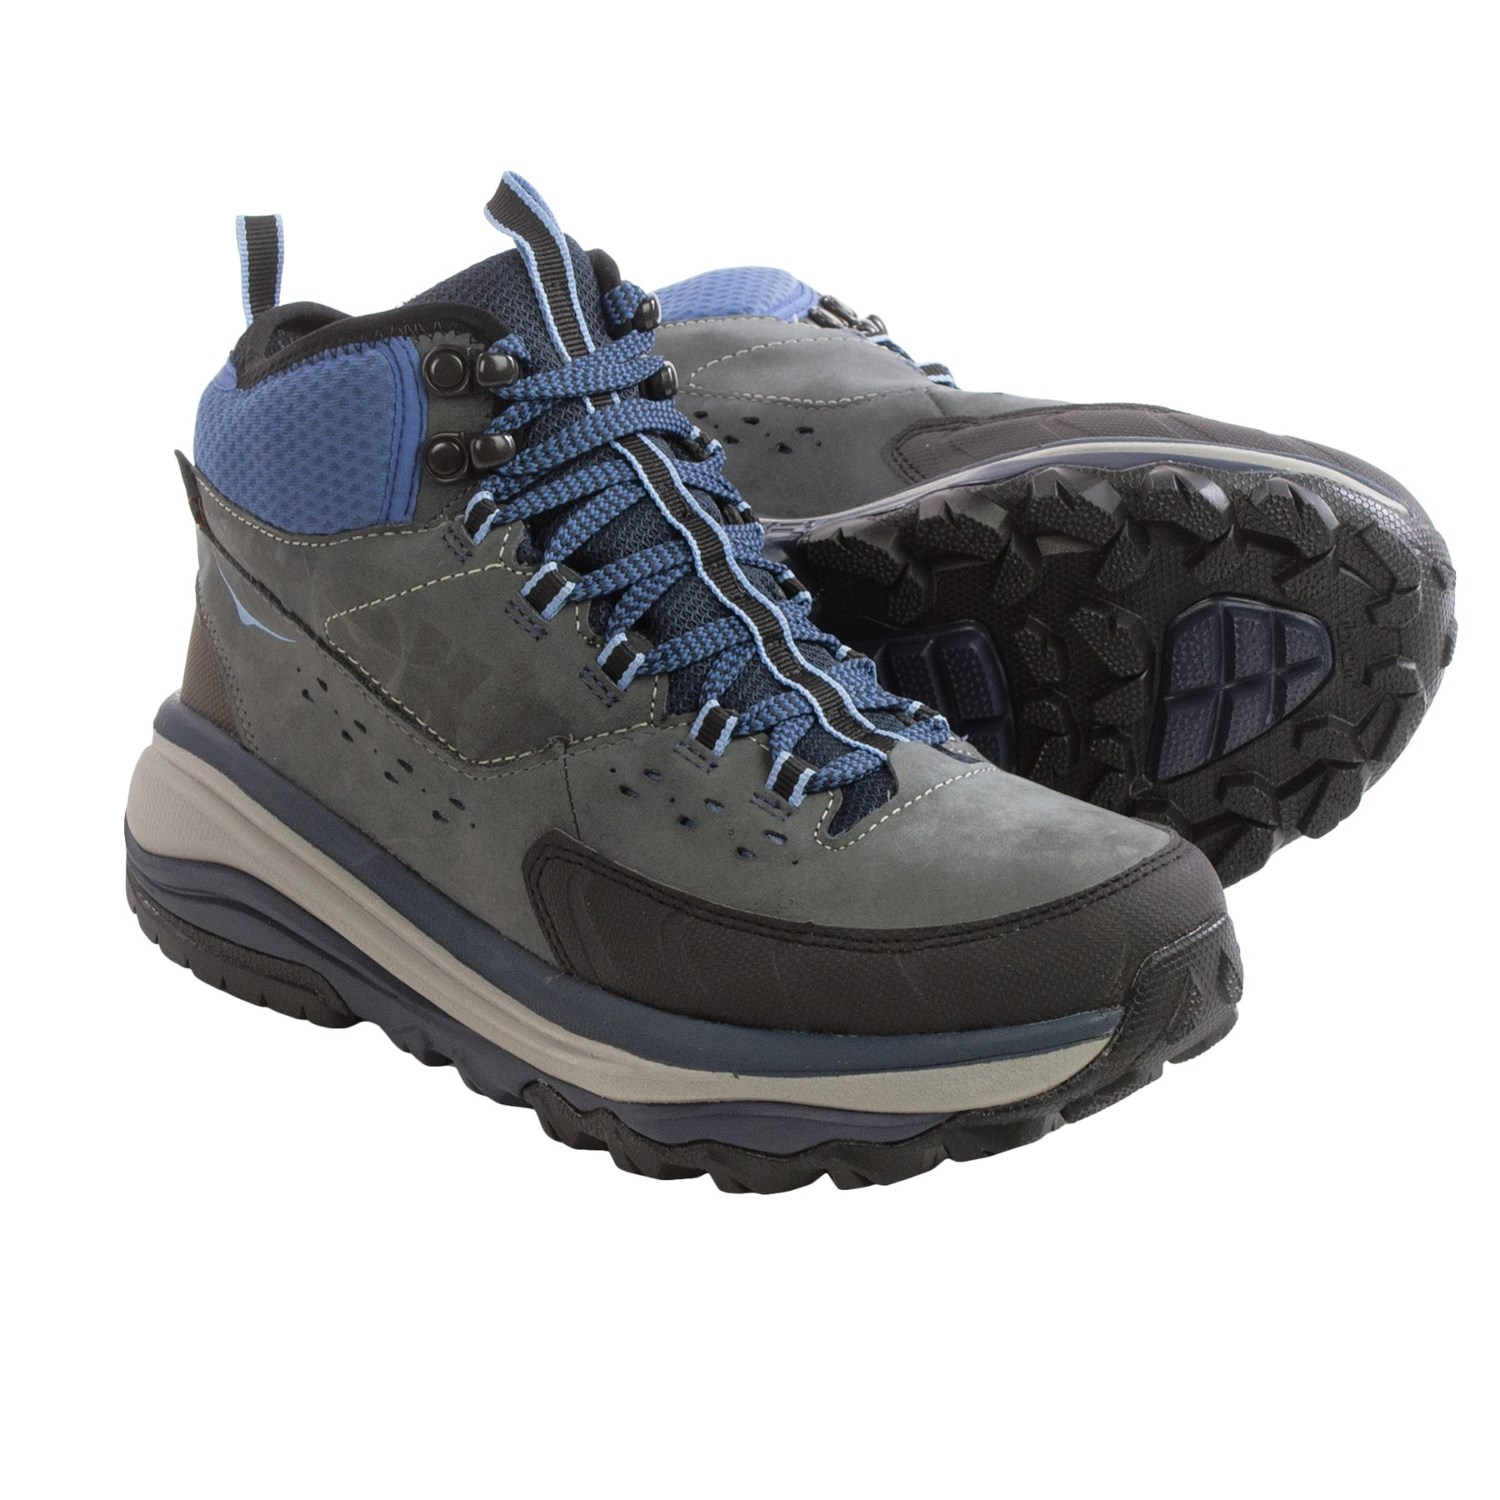 Hoka One One Tor Summit Mid Hiking Boots For Women 127xp